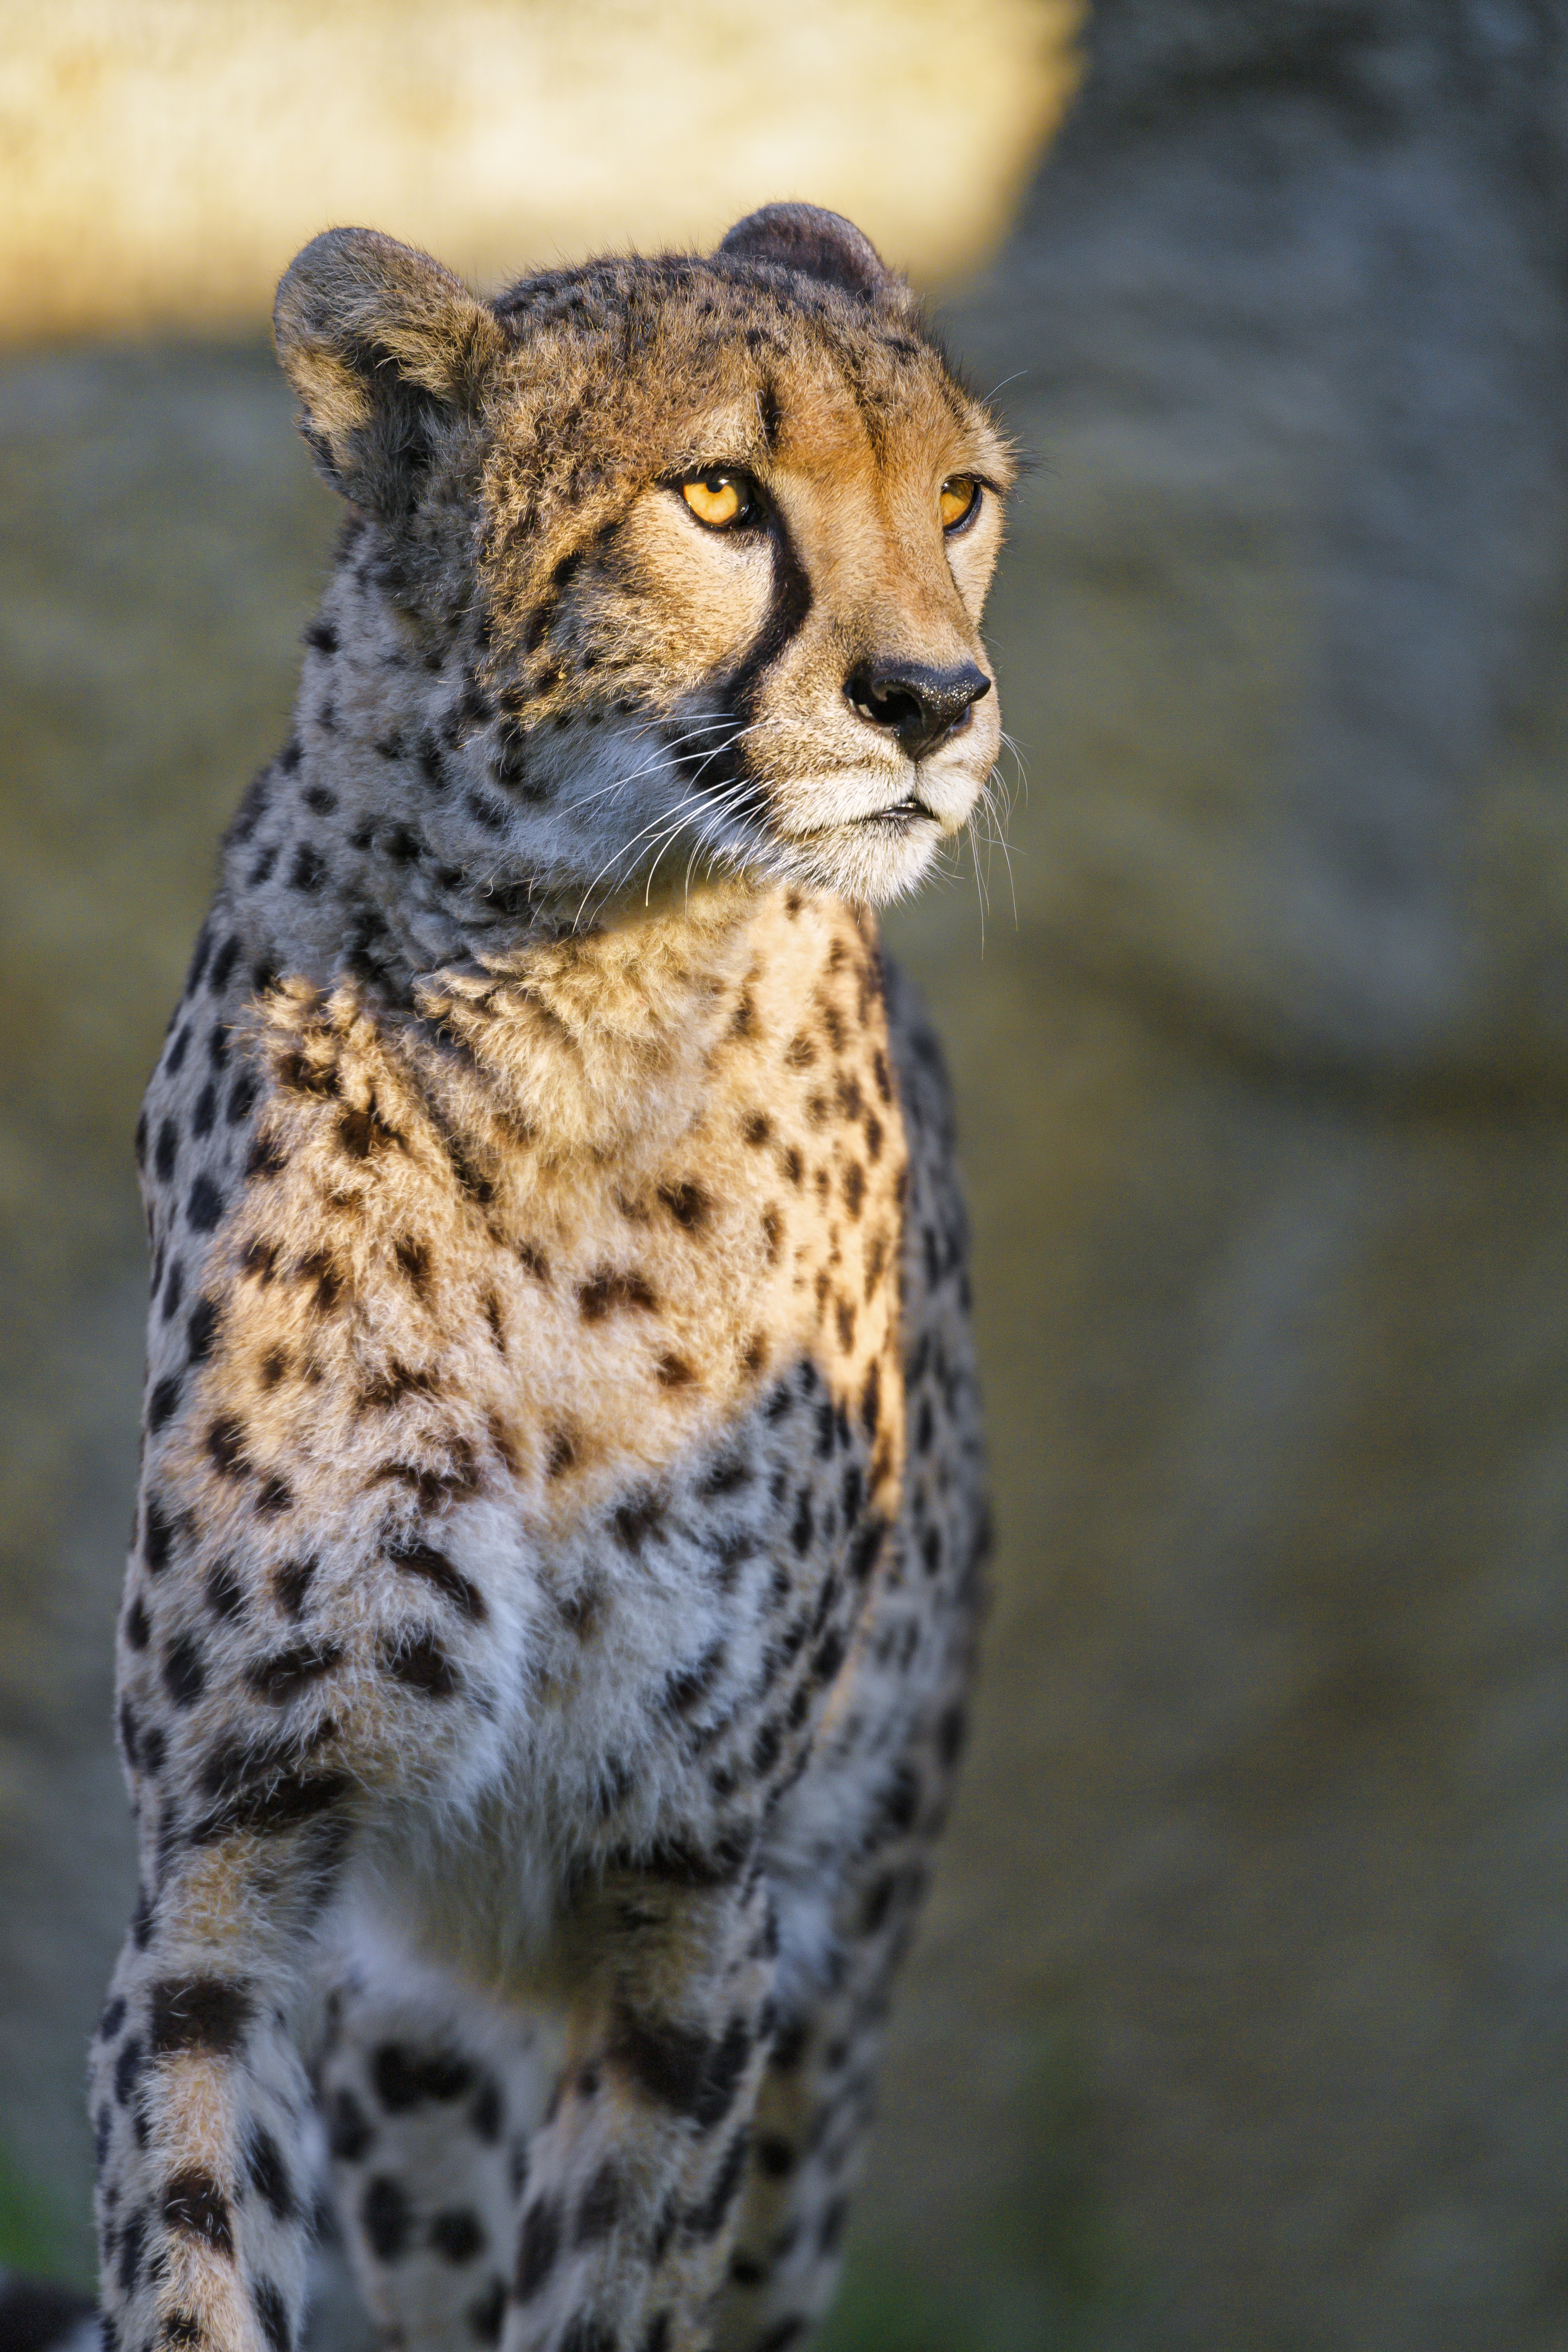 87843 download wallpaper Animals, Cheetah, Sight, Opinion, Animal, Predator, Big Cat screensavers and pictures for free